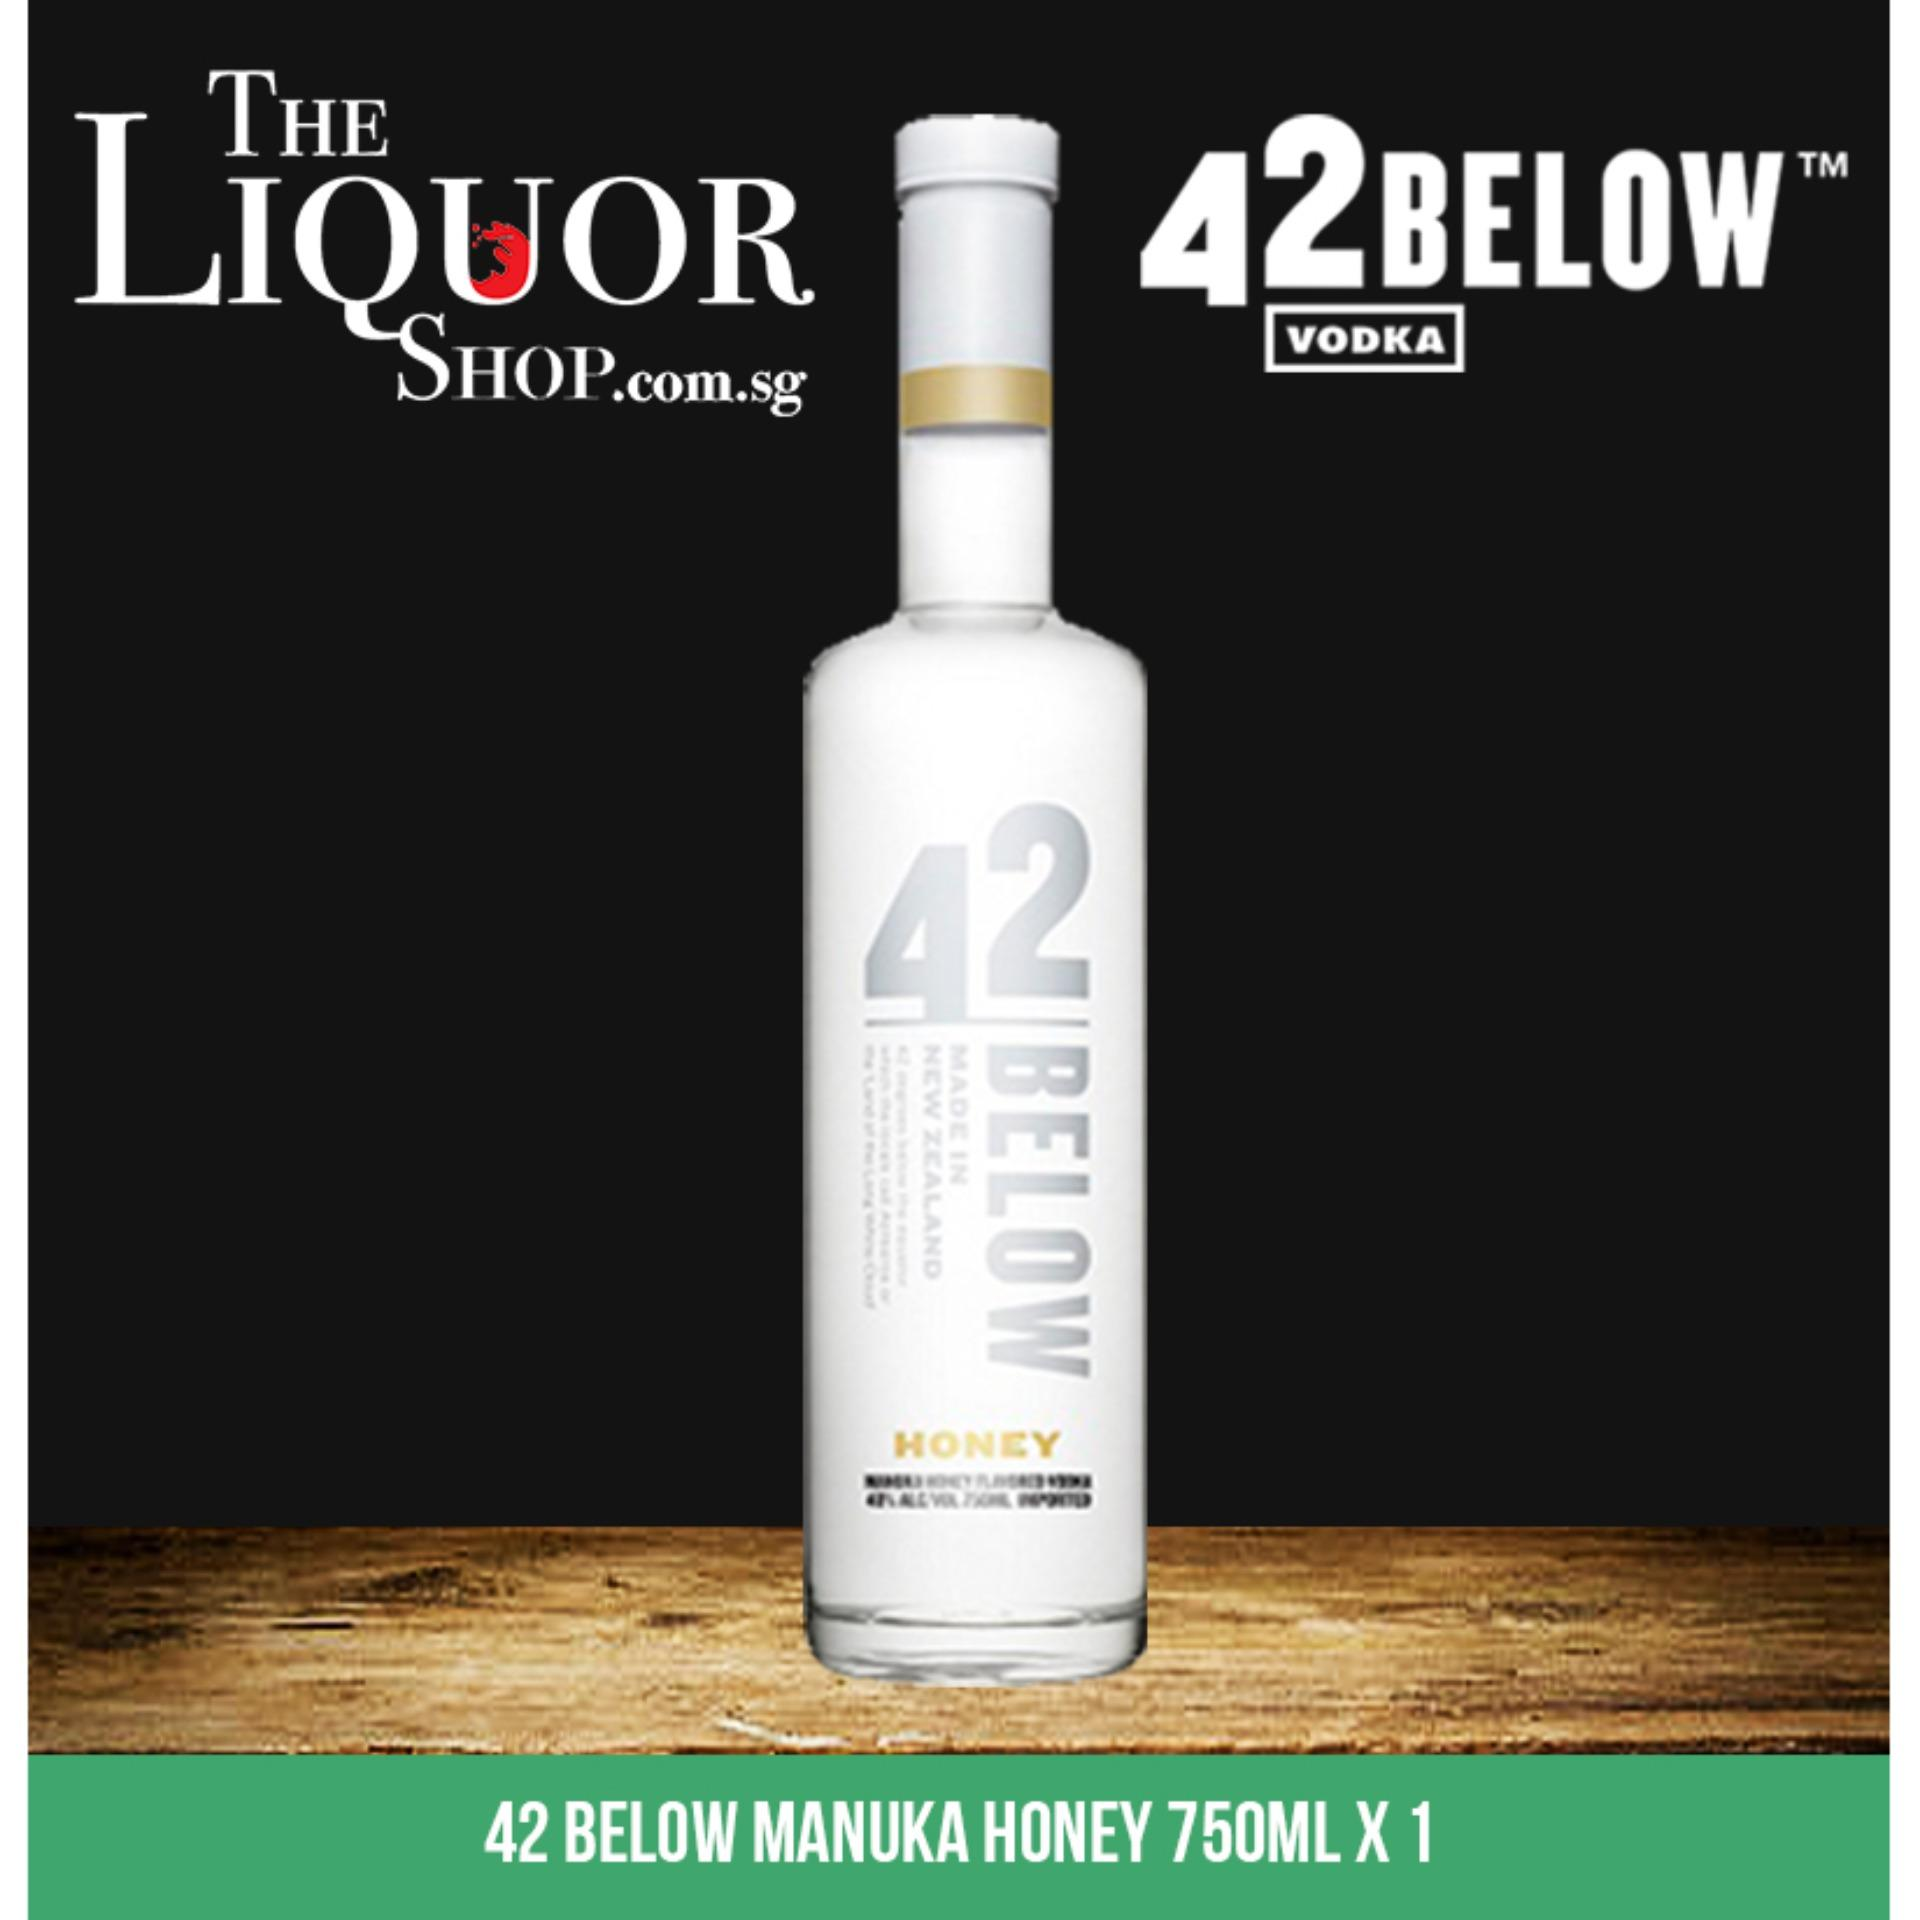 42 Below Manuka Honey 750ml X 1 By The Liquor Shop.